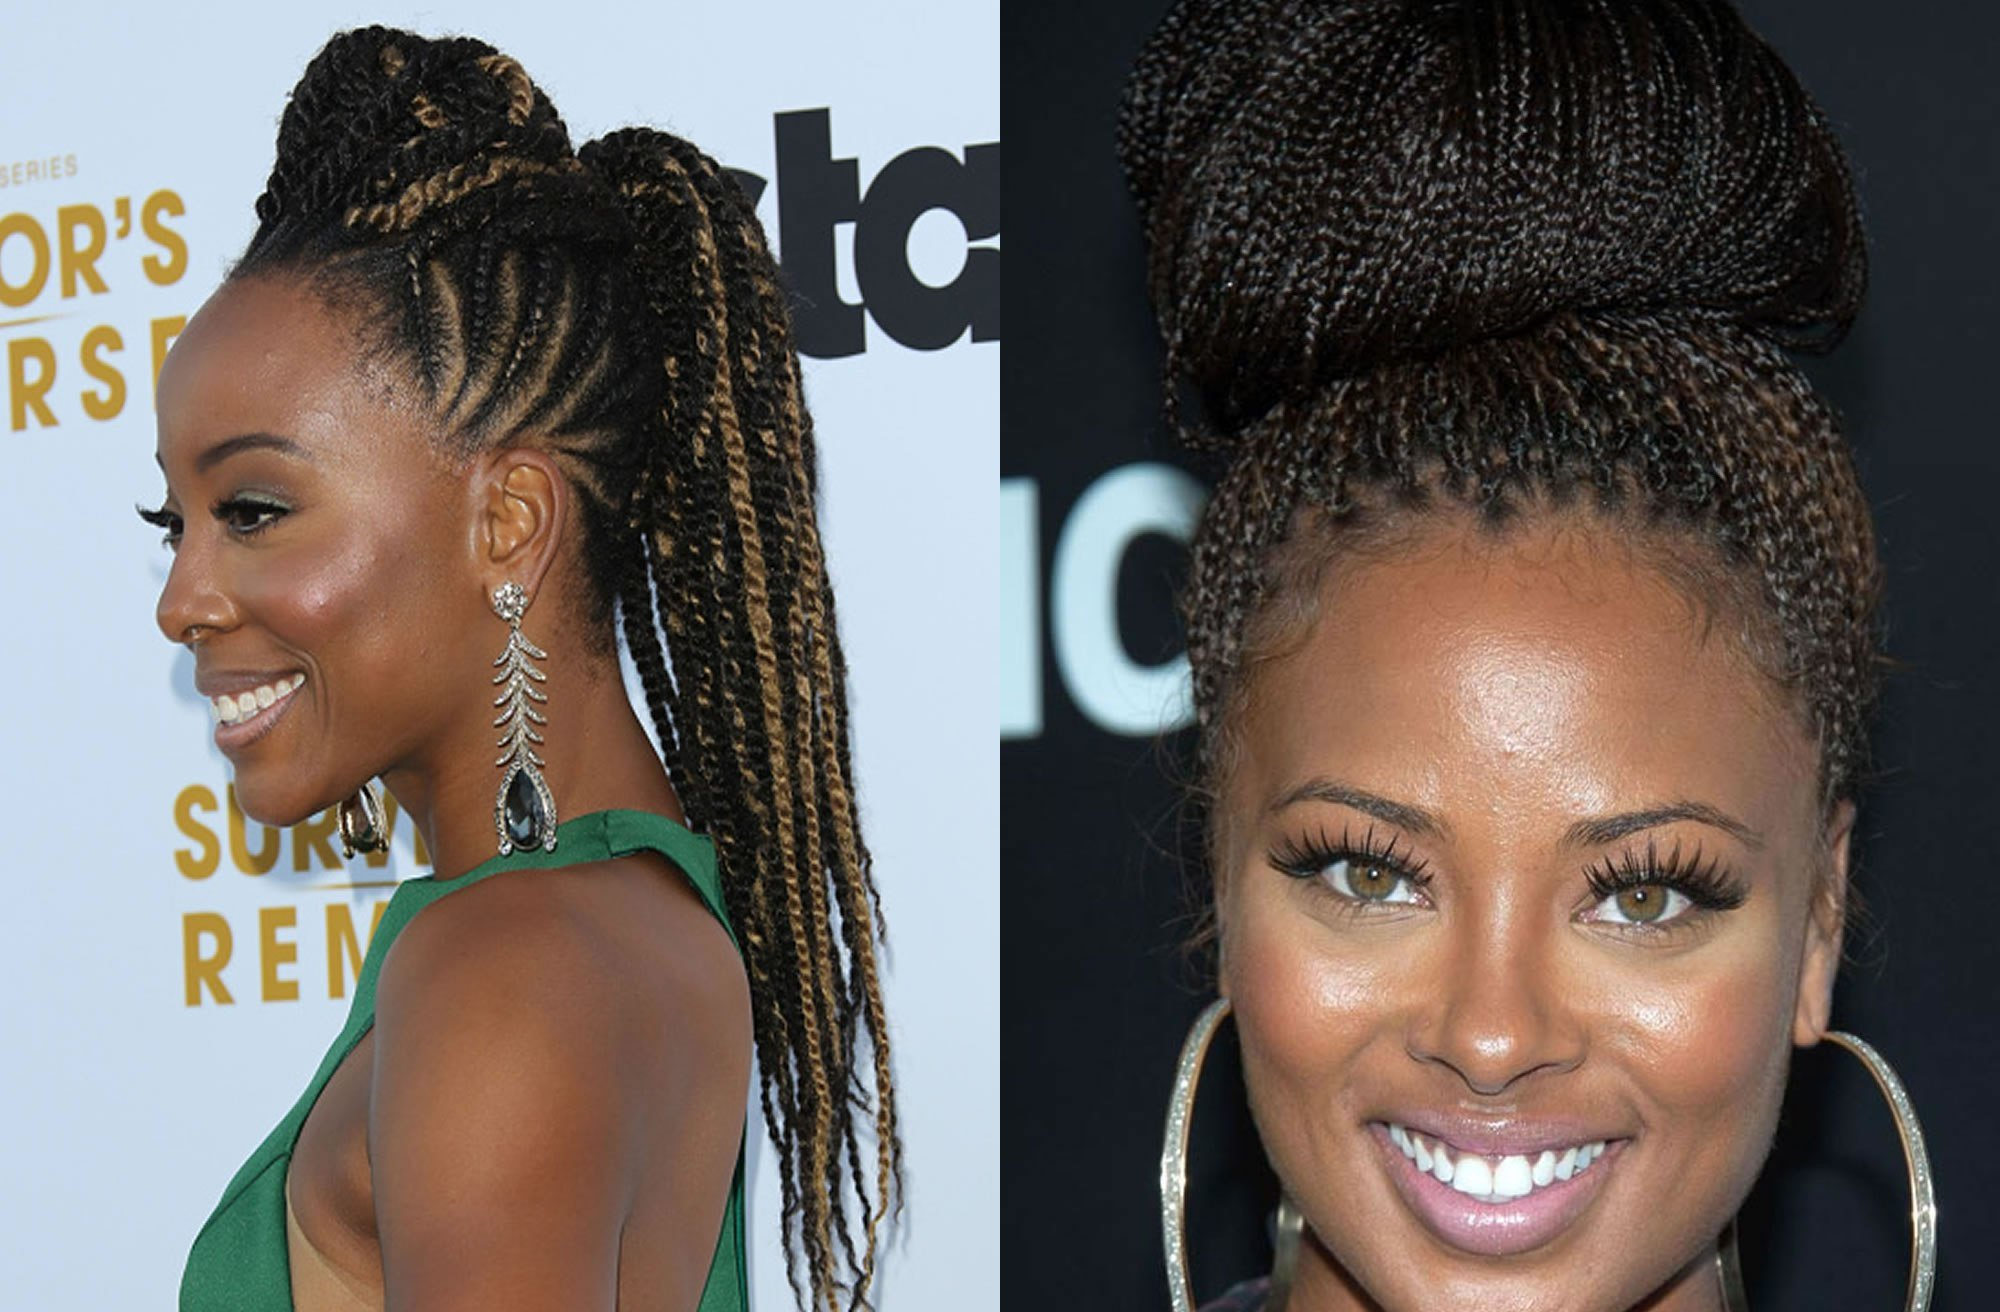 New Best 30 Braided Hairstyles For Black Women 2018 2019 Ideas With Pictures